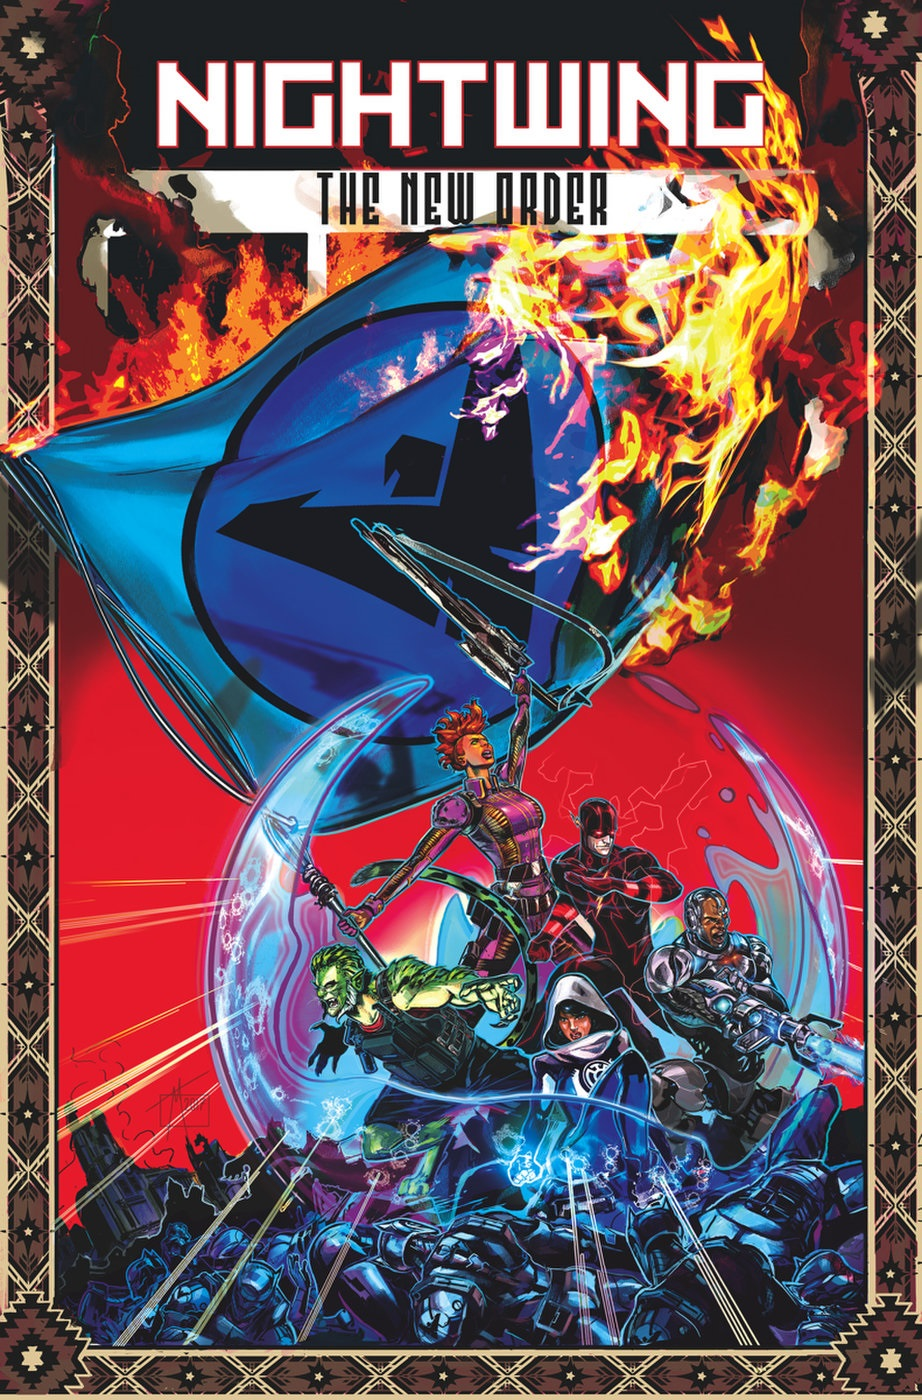 Titans (The New Order)